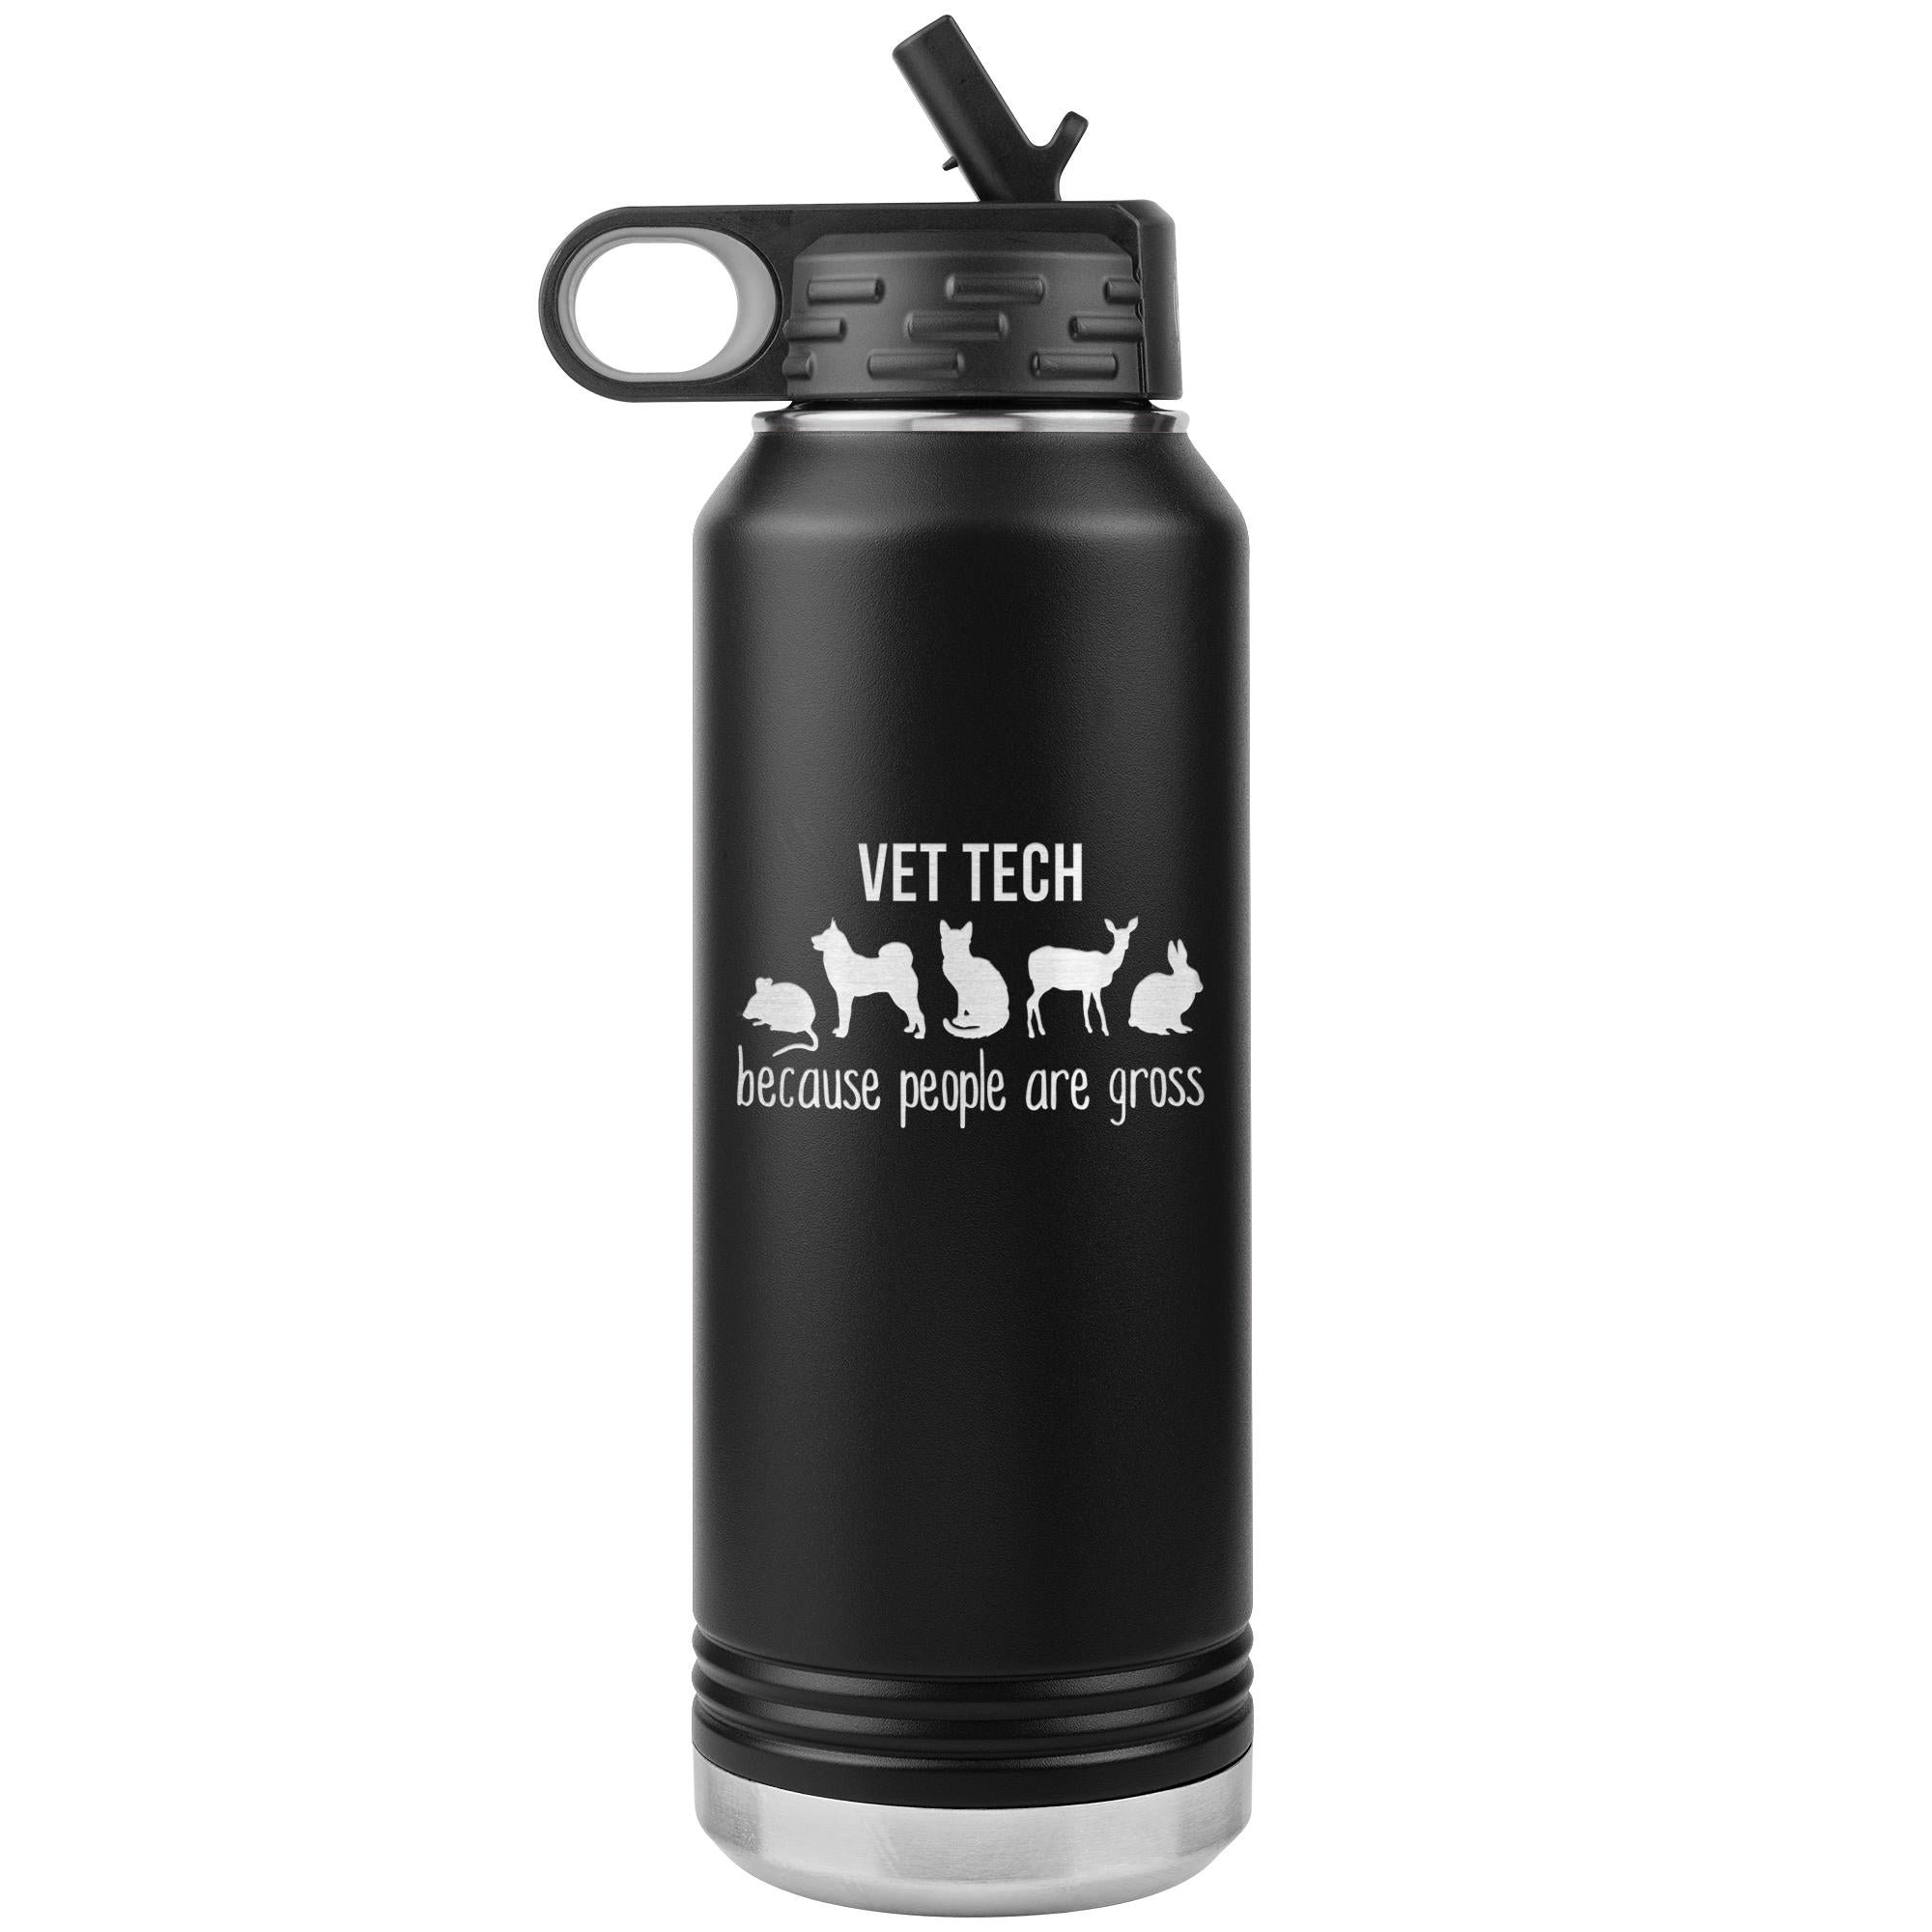 Vet tech, because people are gross Water Bottle Tumbler 32 oz-Tumblers-I love Veterinary